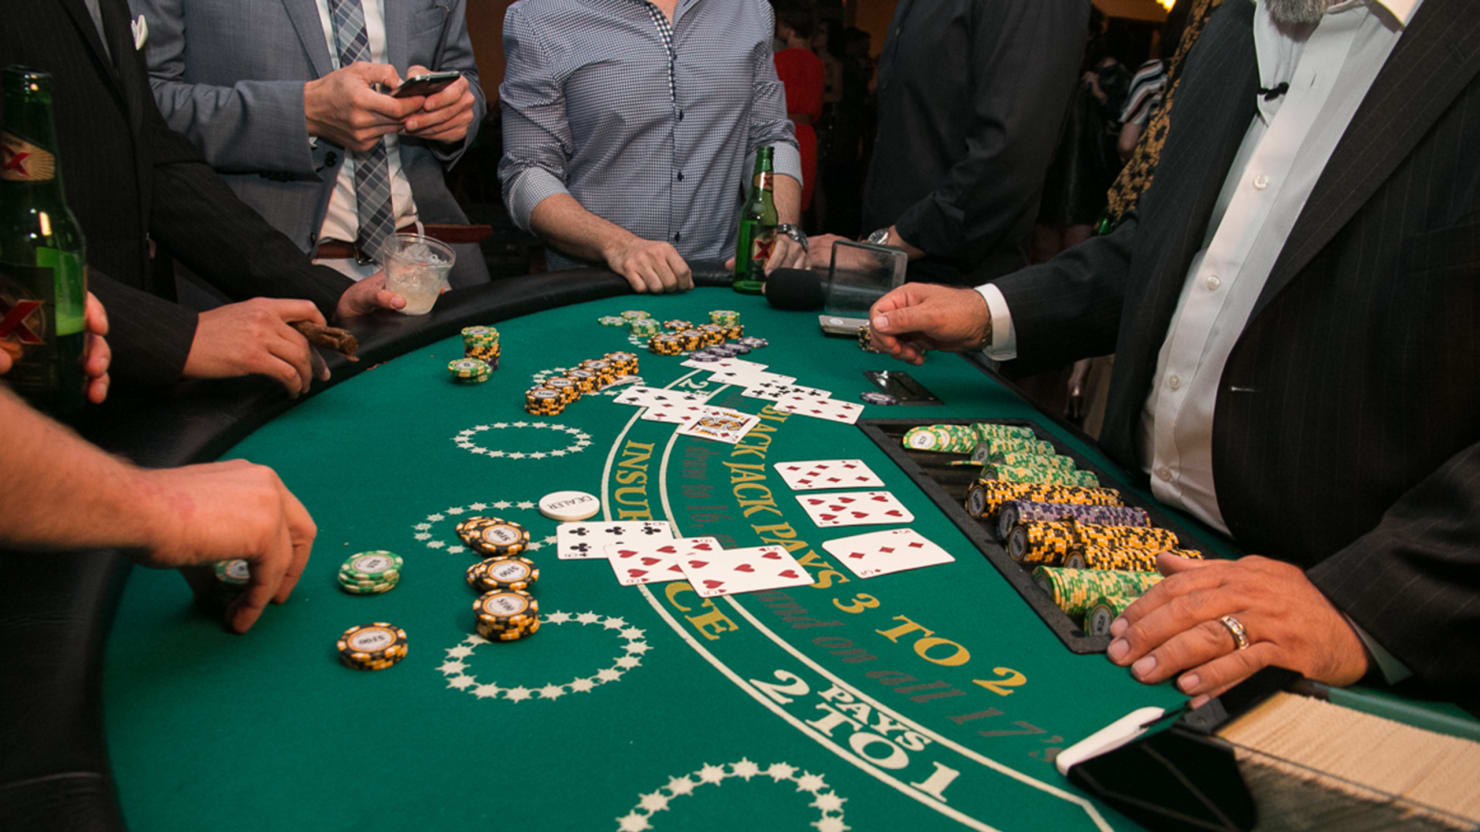 Playing Blackjack In Las Vegas